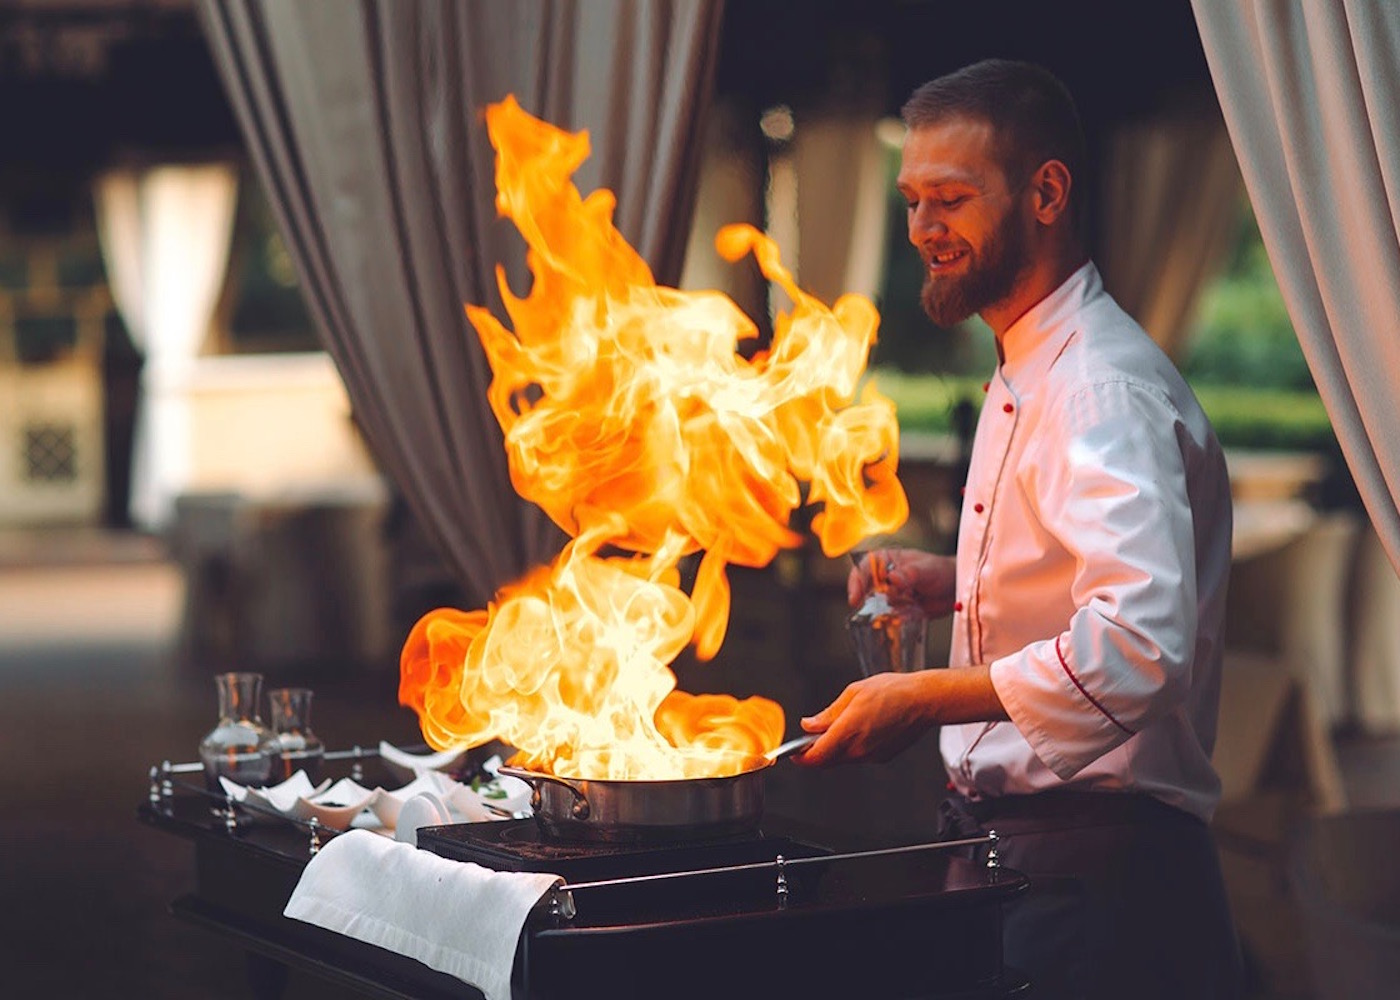 Chef cooking with fire at KAZA Restaurant at Kanvaz Village Hotel & Resort in Seminyak, Bali - Indonesia